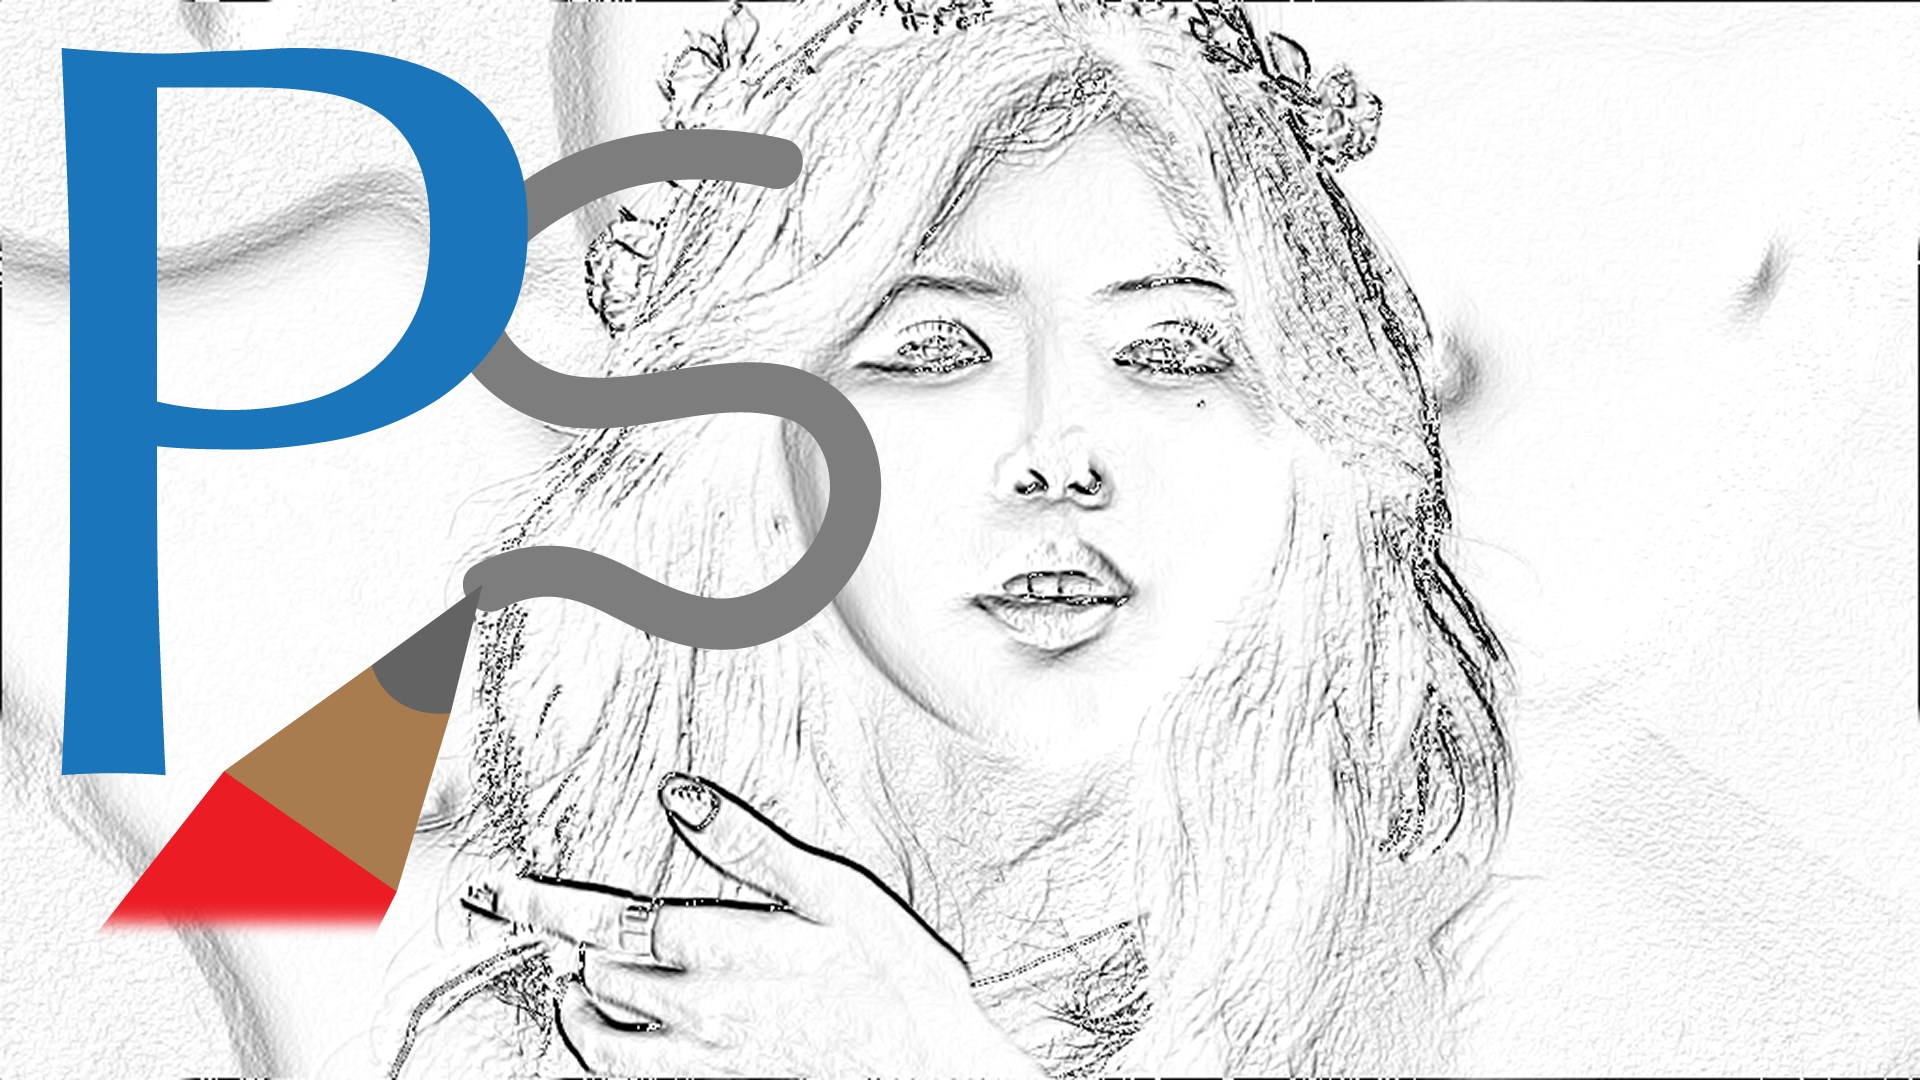 Photo To Pencil Sketch Software Free Download